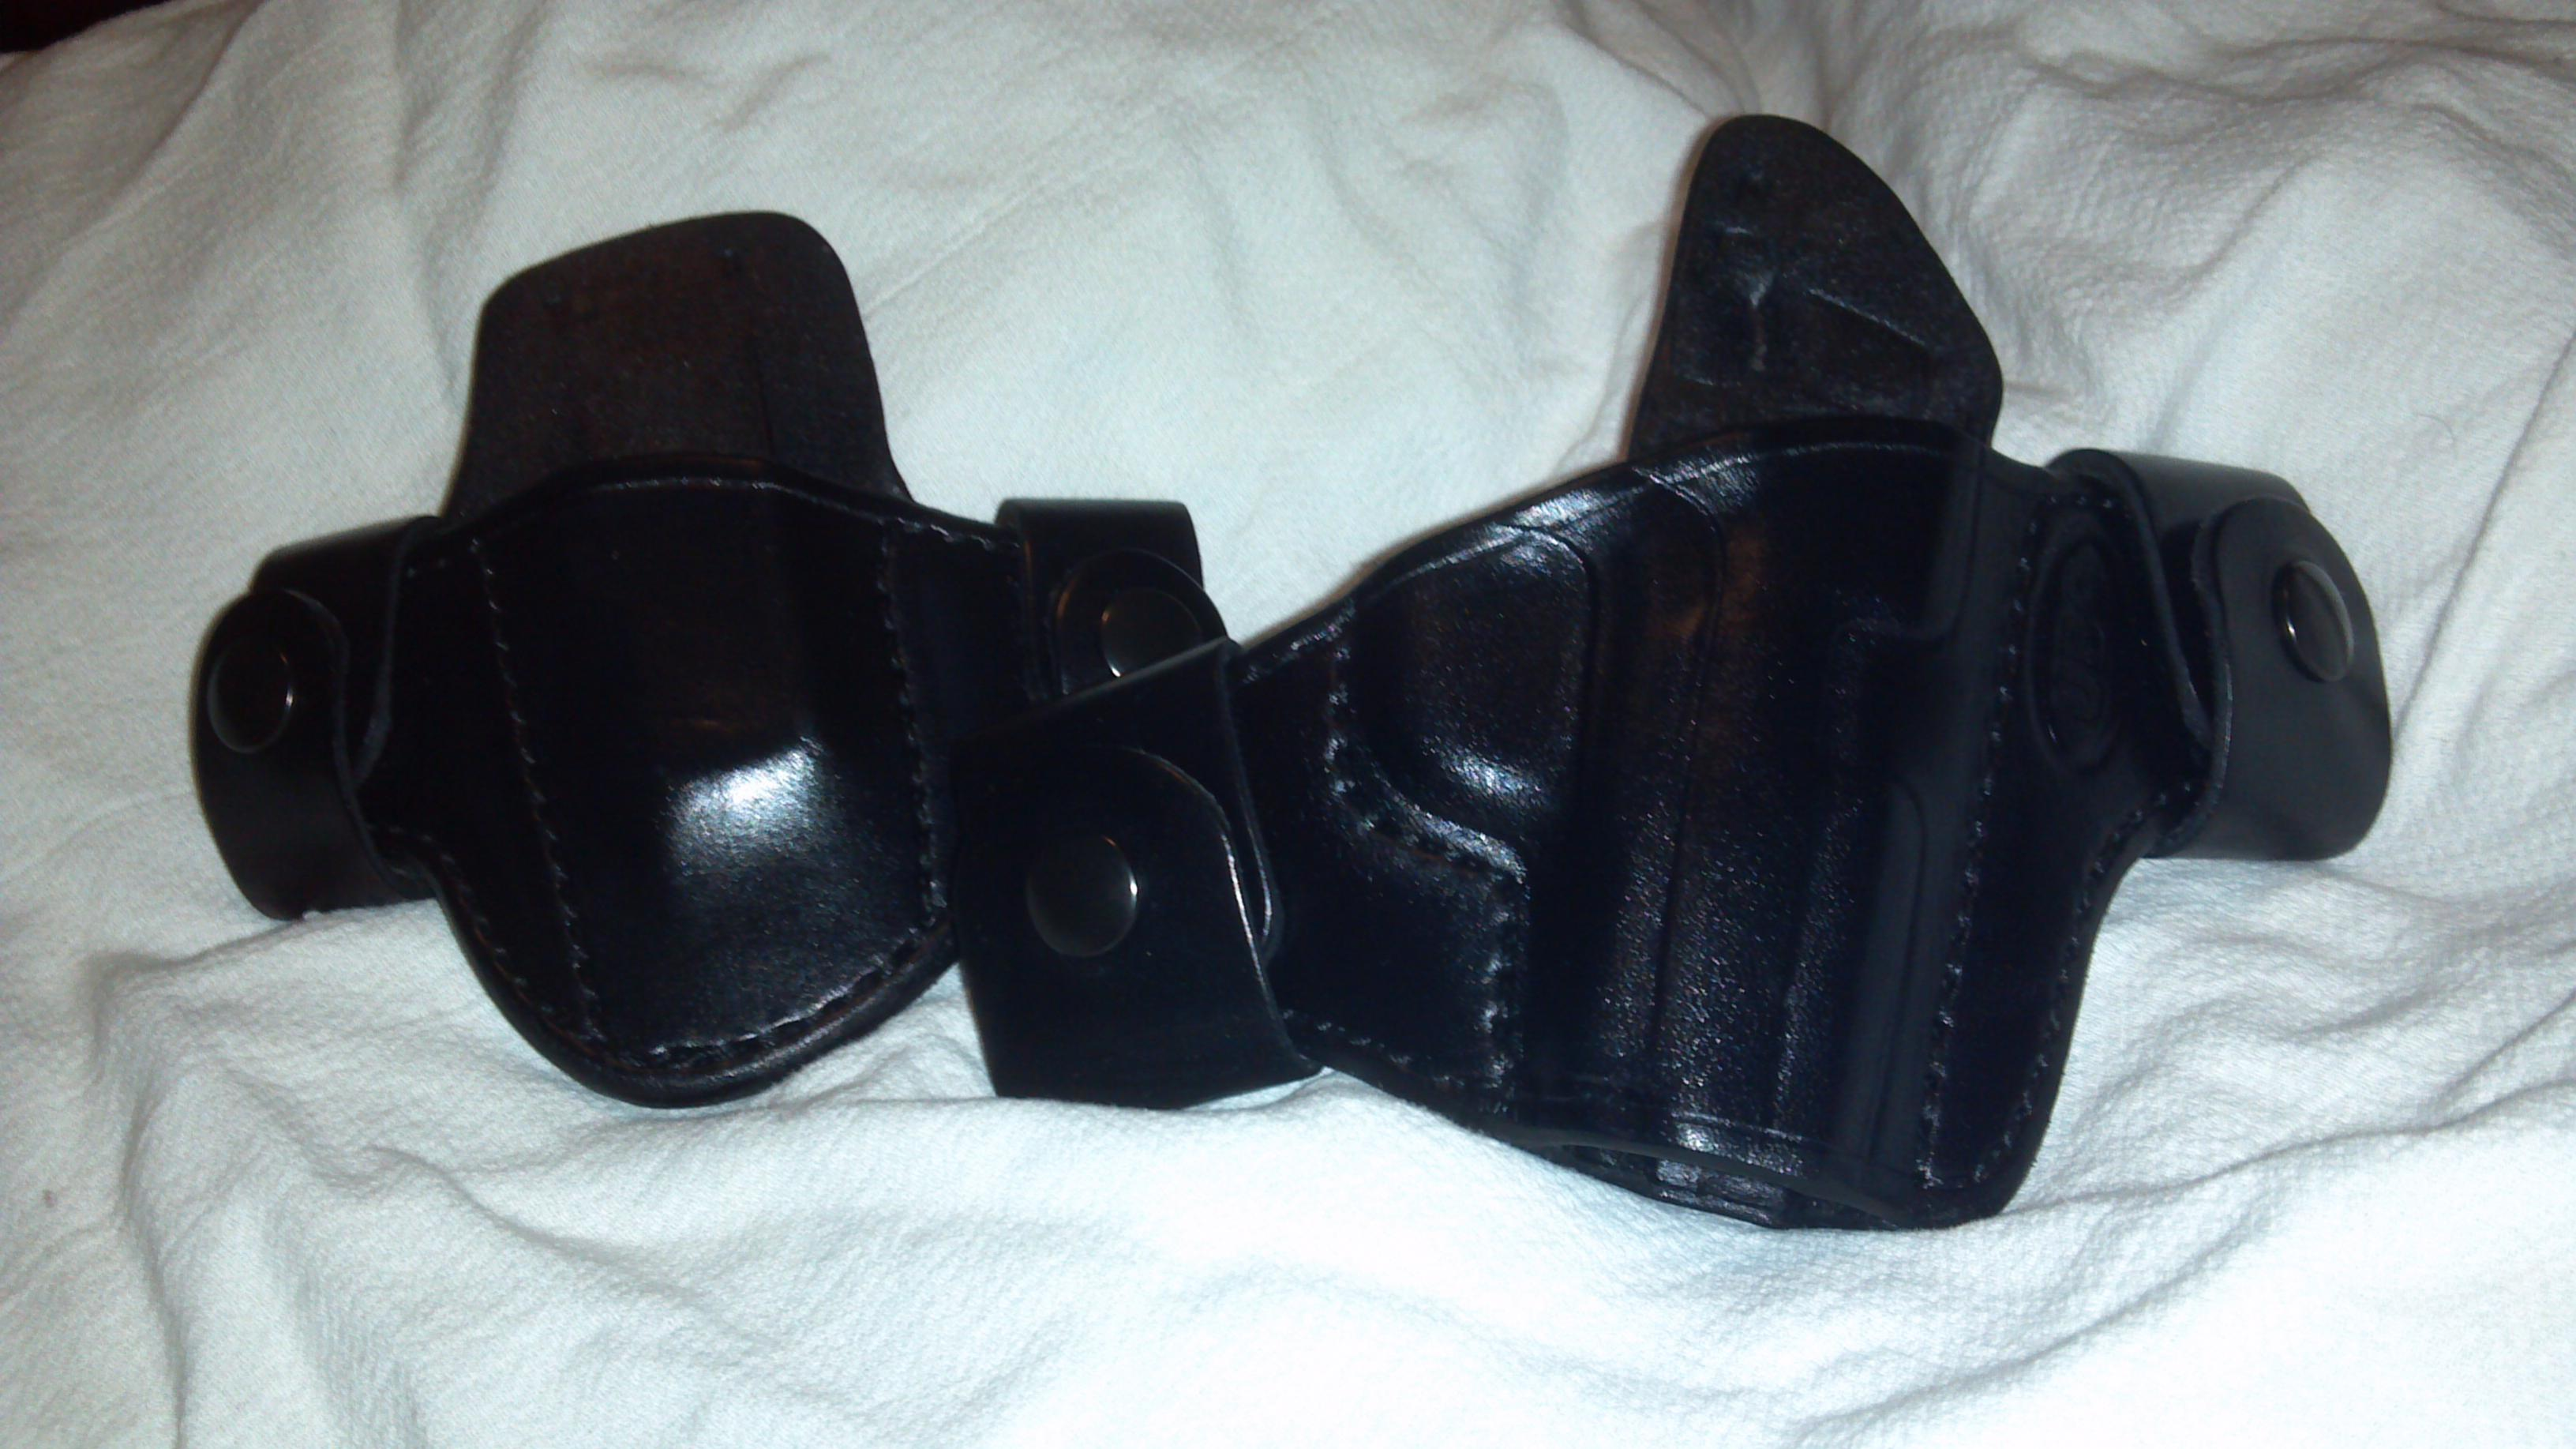 WTS: UBG Regulator Holster and Mag Pouch for Sig P238-2012-12-16_19-30-48_296.jpg